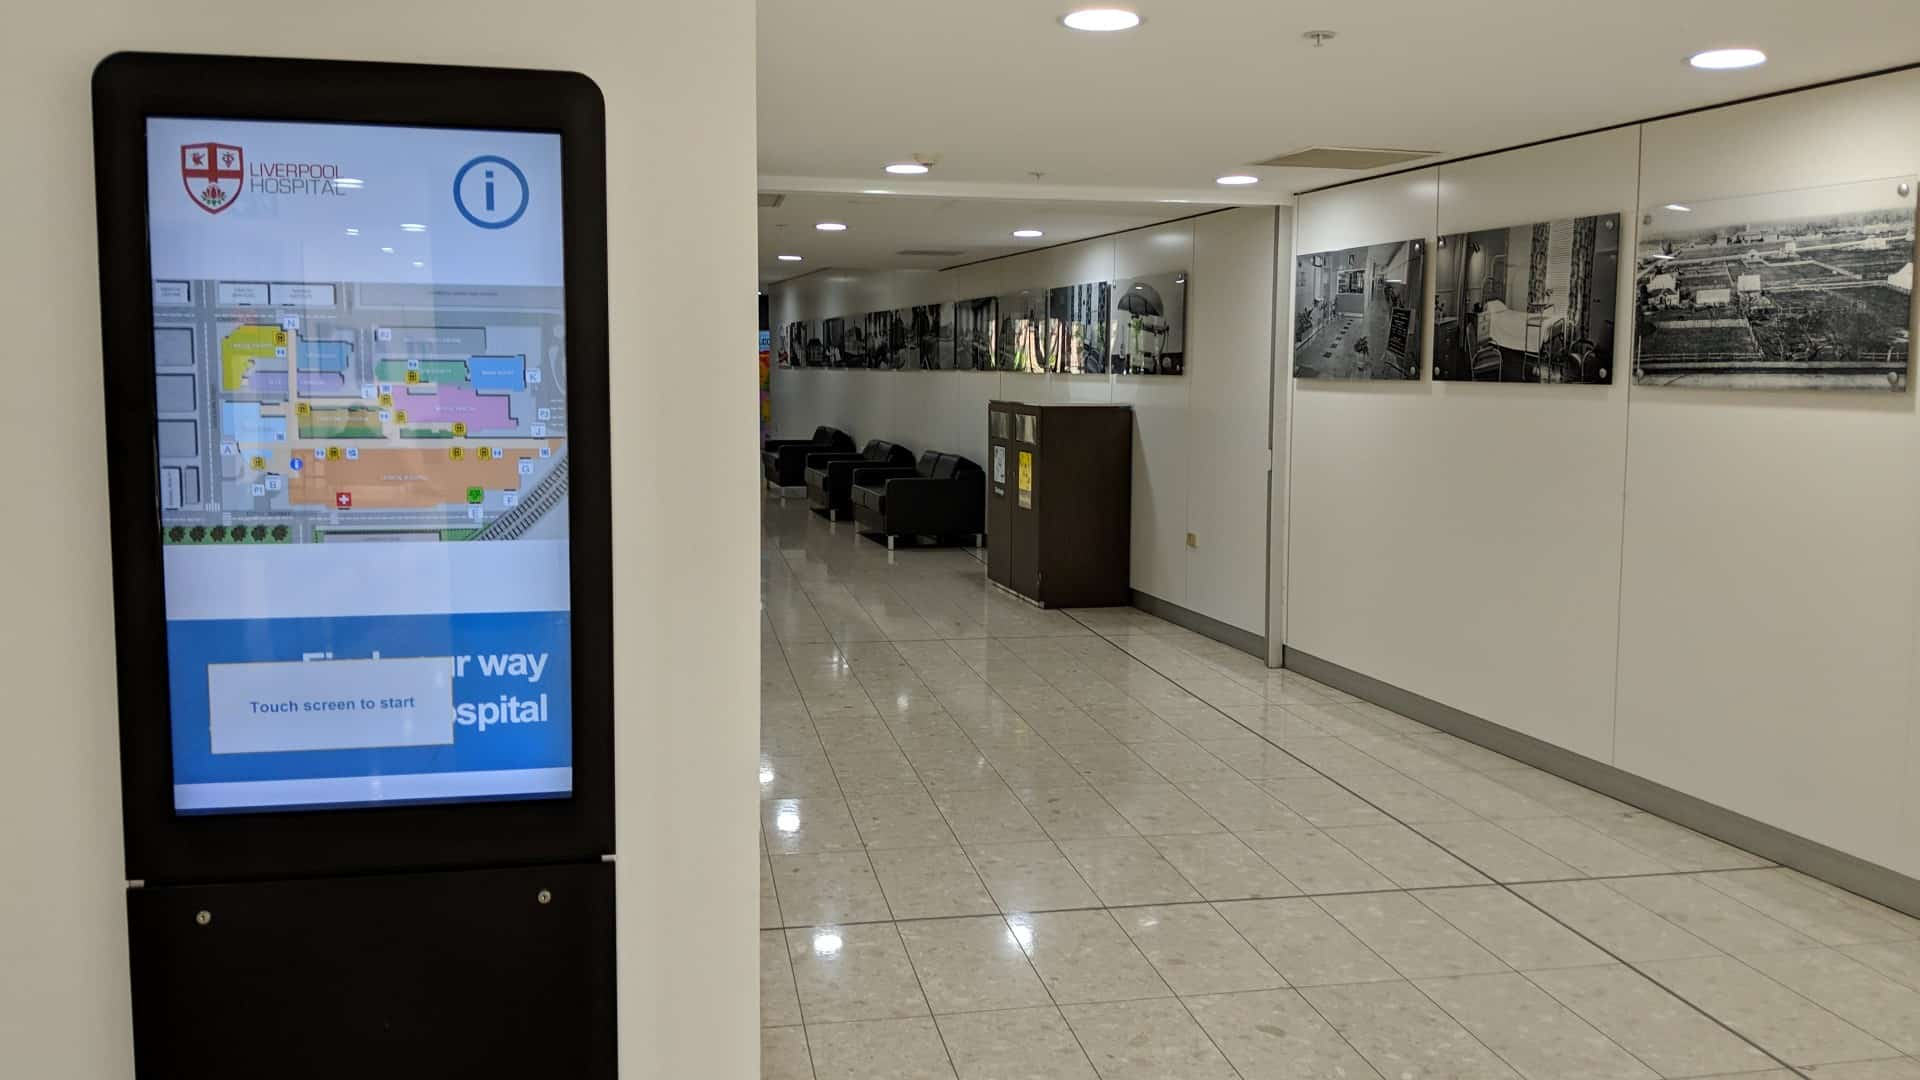 Advertise Me - Digital Wayfinding Liverpool Hospital